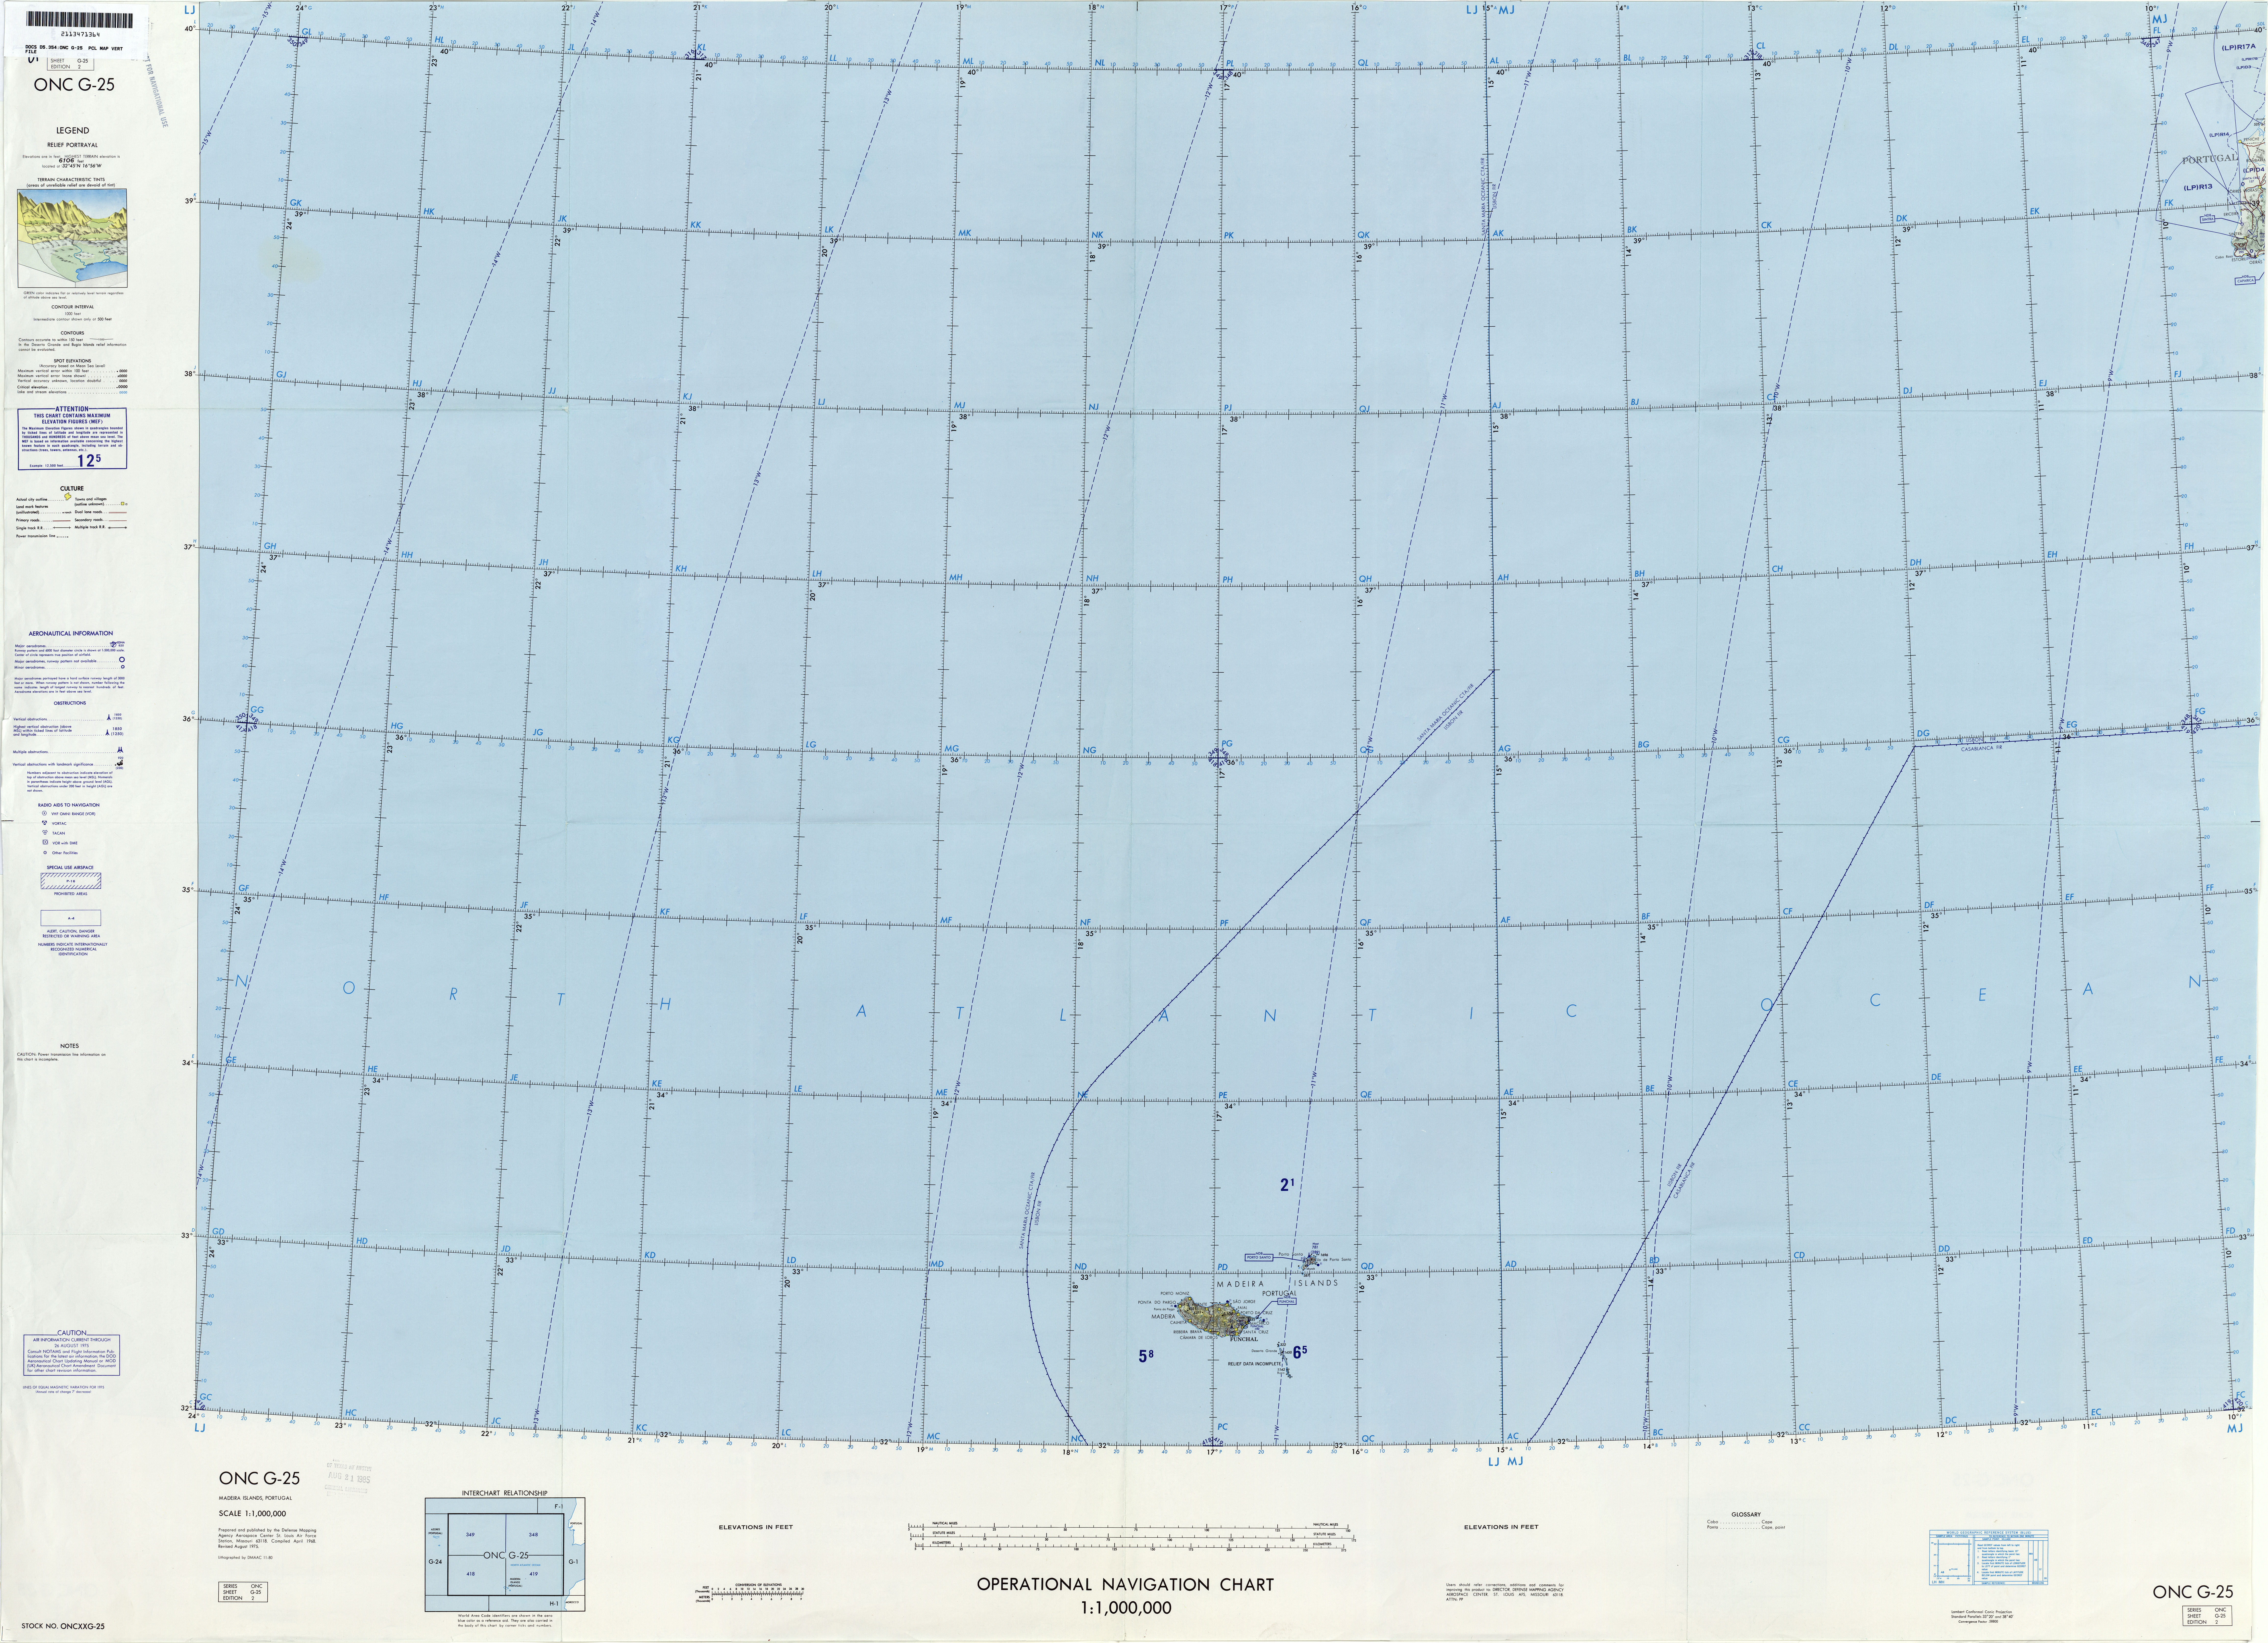 Azores Not For Navigational Use U S Defense Mapping Agency Aeroe Center Compiled 1968 Revised 1989 8 9mb